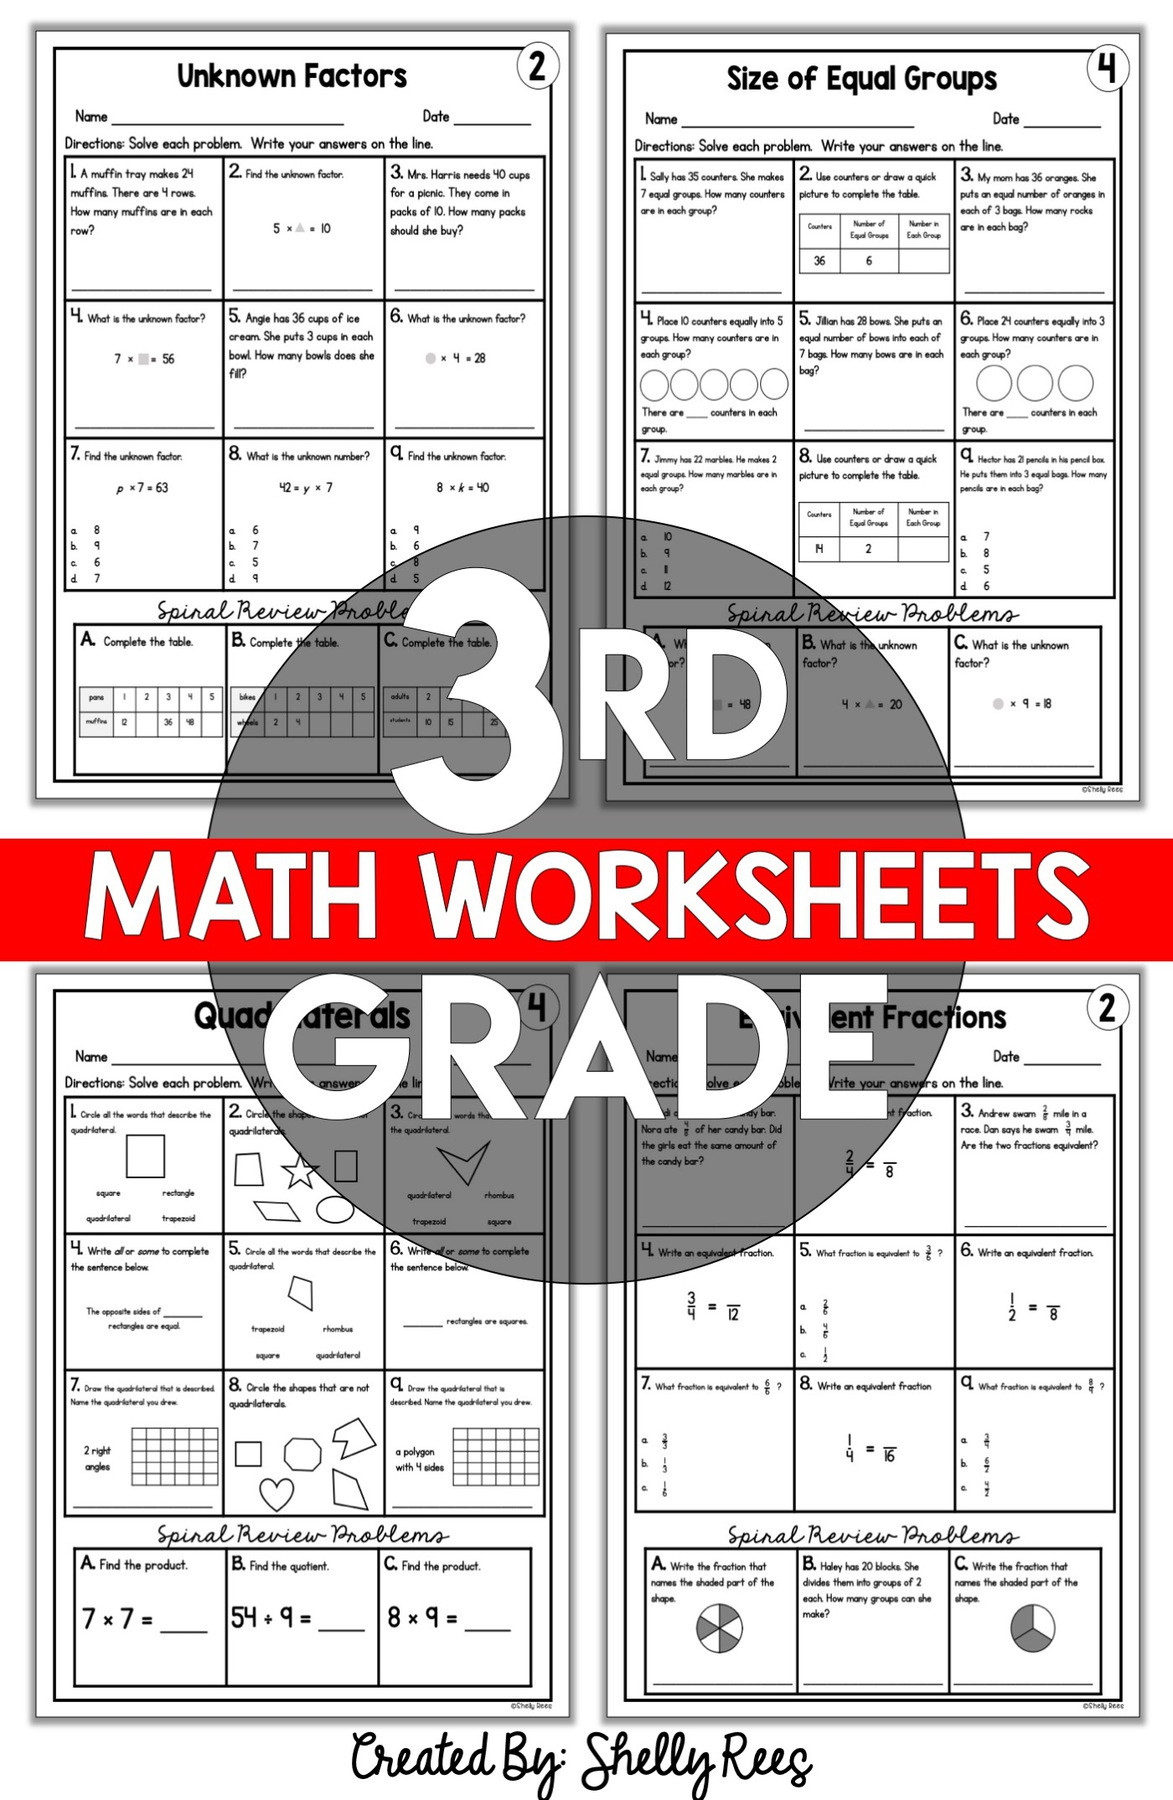 Equal Groups Worksheets 3rd Grade 3rd Grade Math Worksheets Free and Printable Appletastic